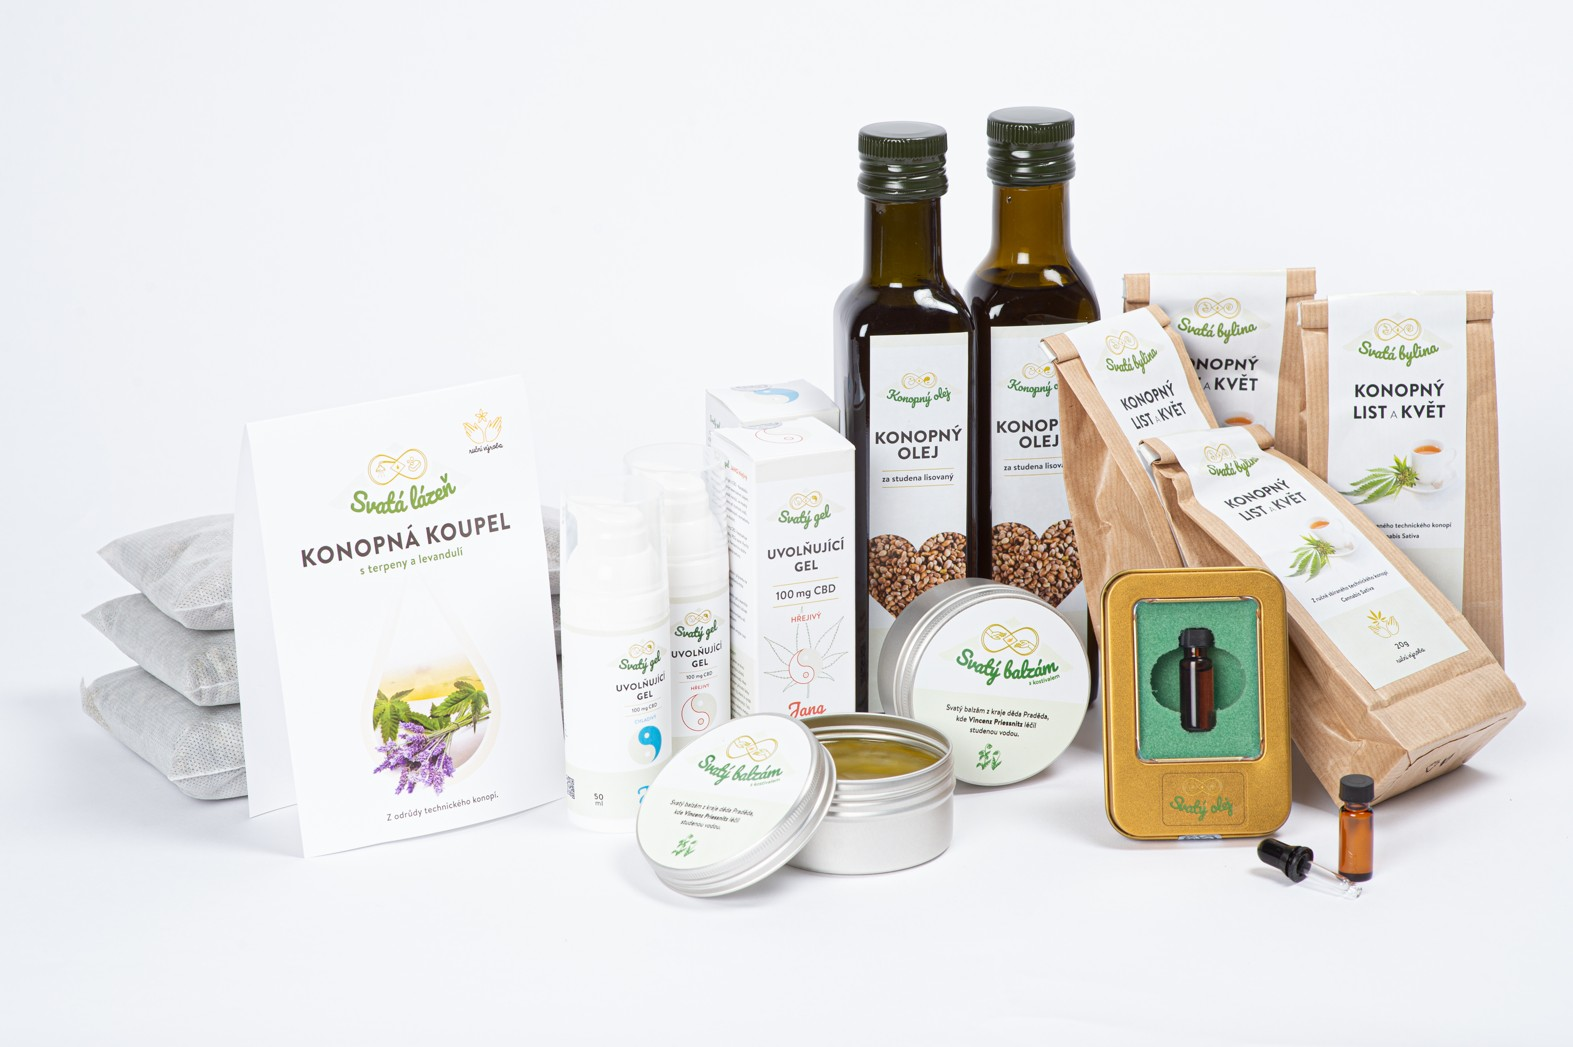 Various CBD and hemp products from family-run cannabis company in the Czech Republic.